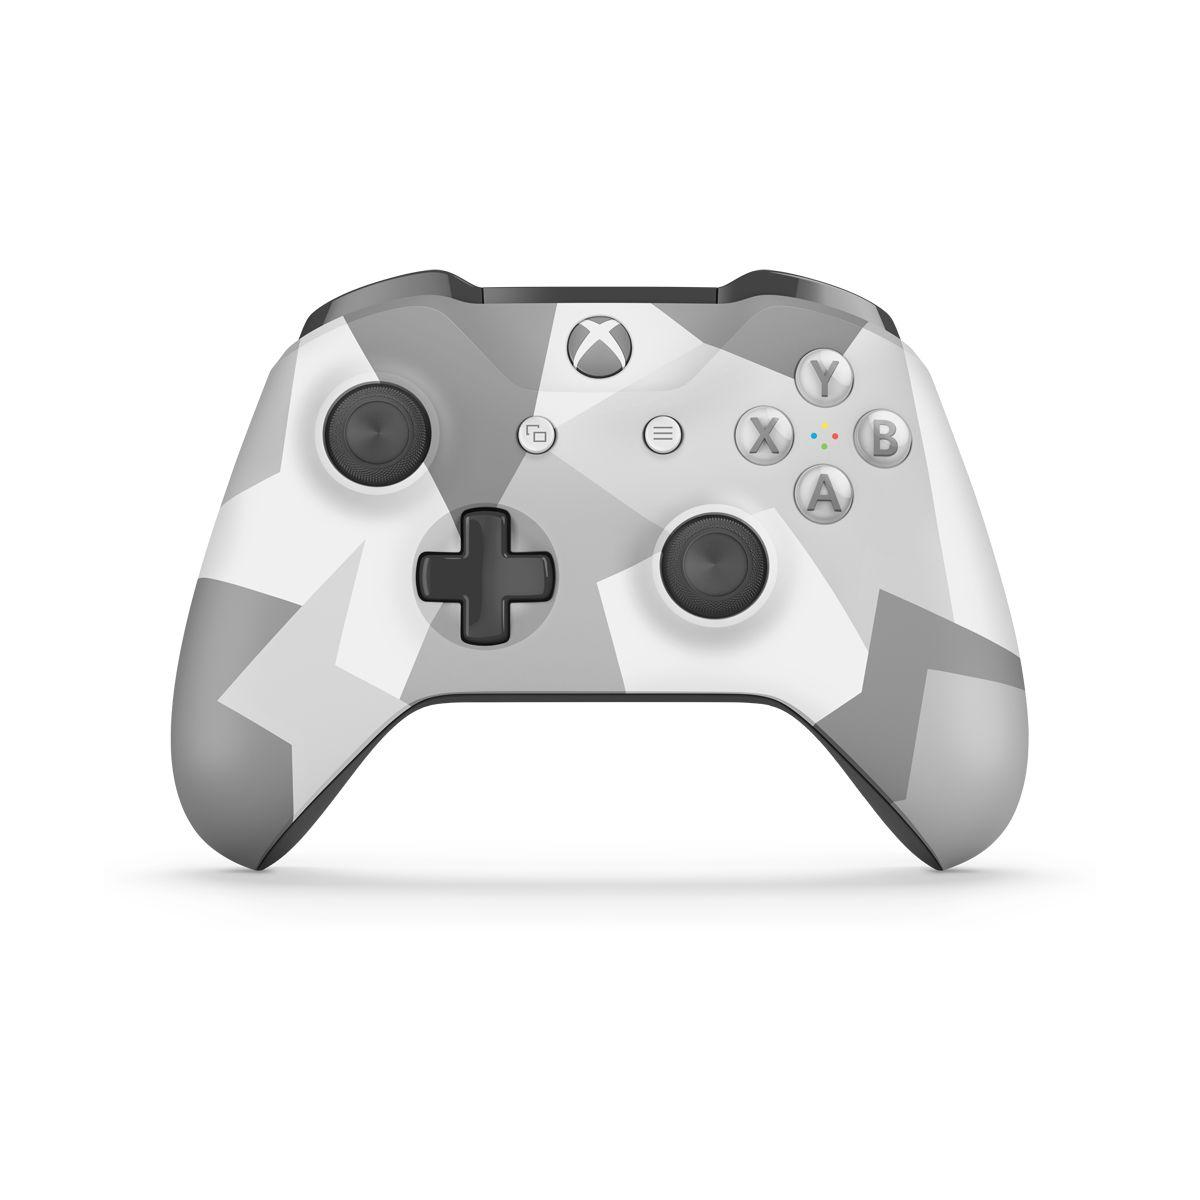 Acc. microsoft manette xbox sans fil win - 5% de remise : code multi5 (photo)